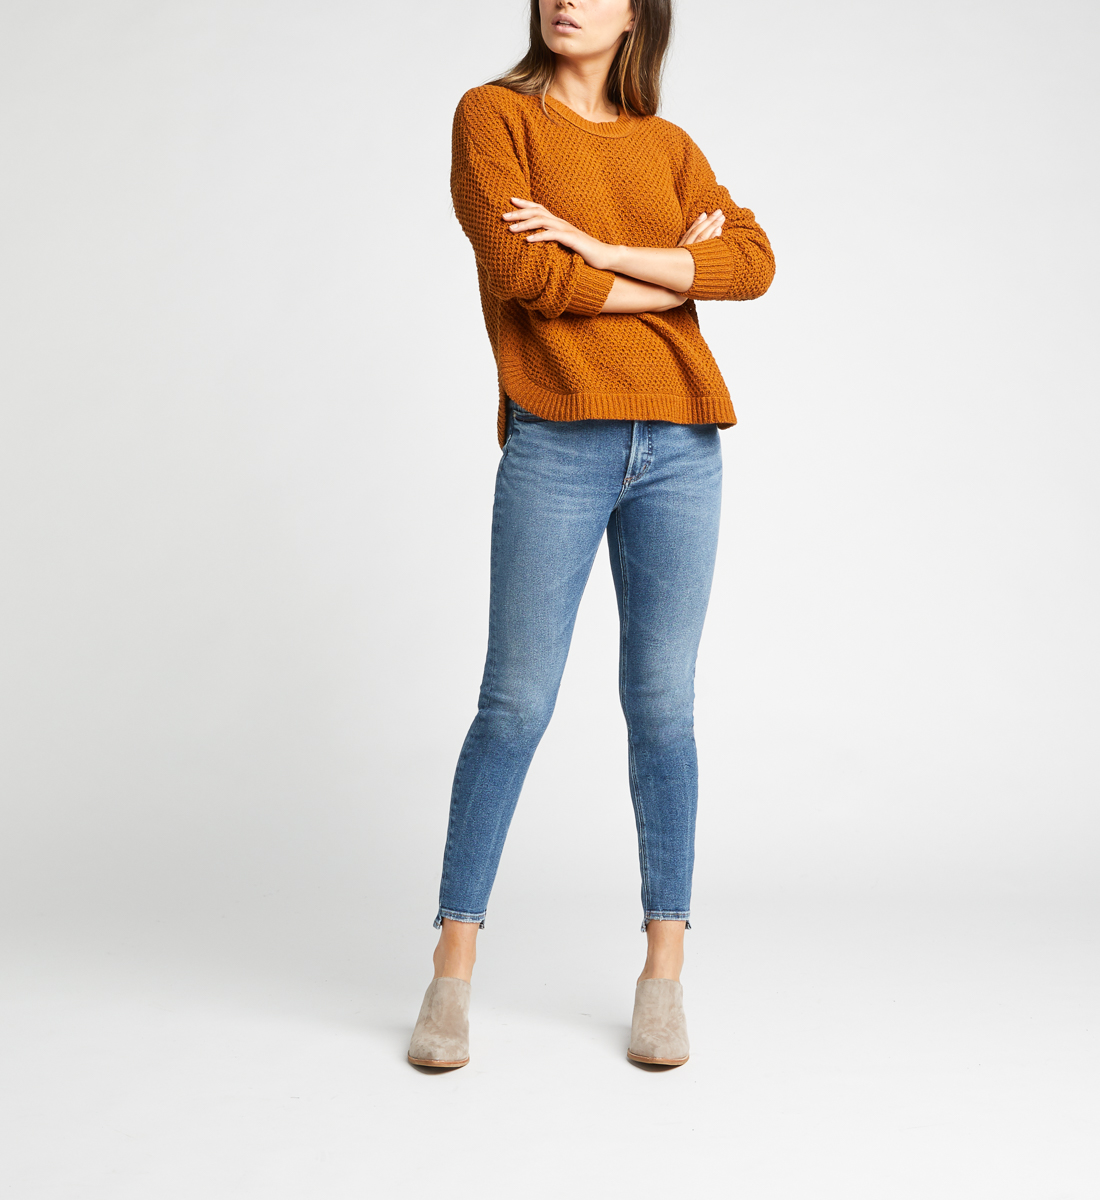 Most Wanted Mid Rise Skinny Jeans Alt Image 1